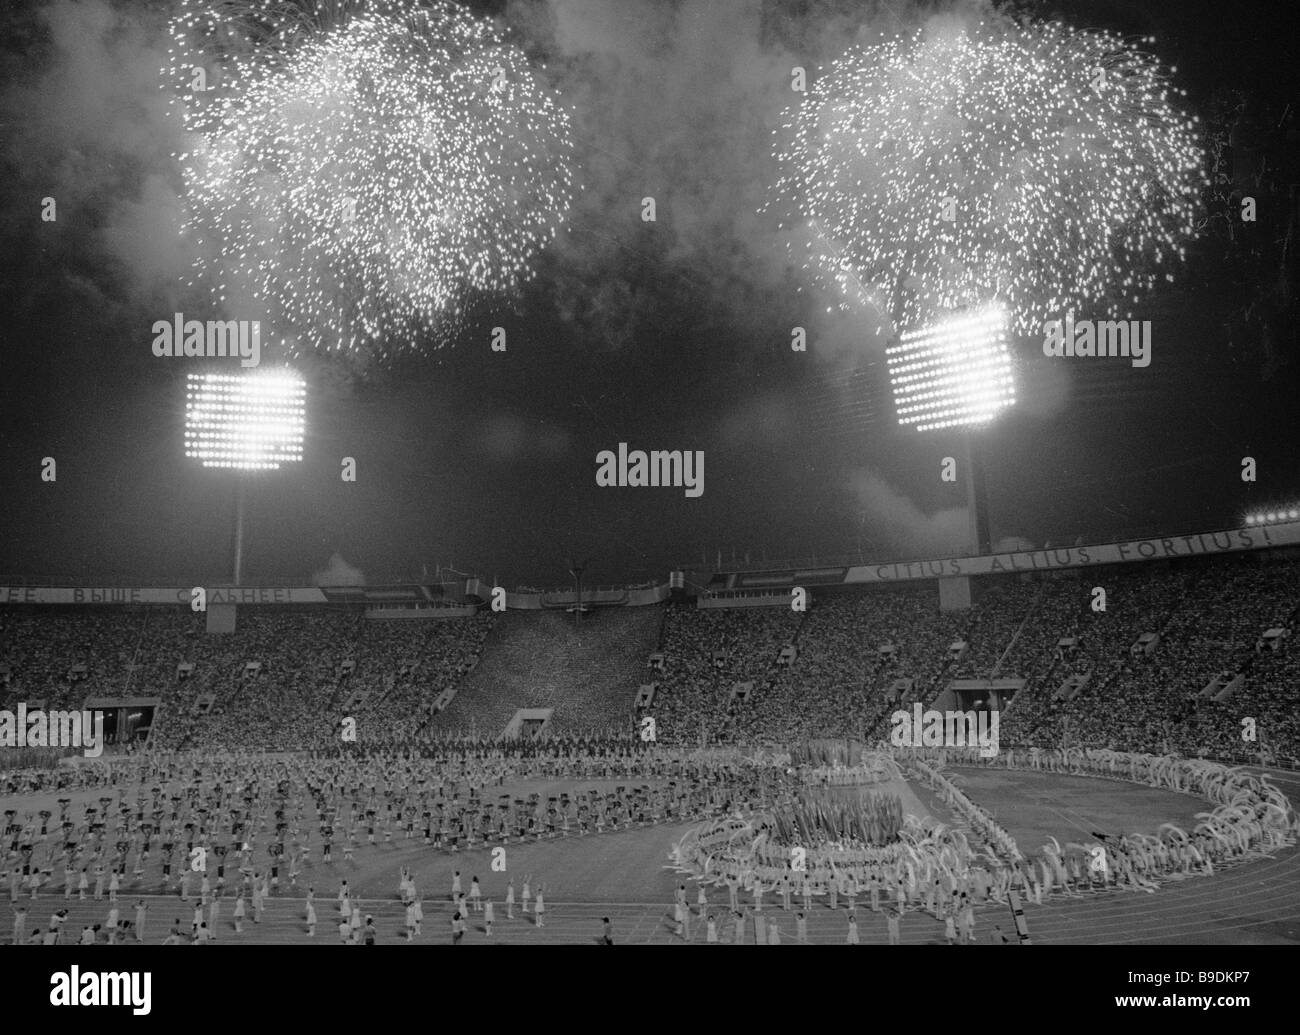 Official closure of 22nd Olympic Games - Stock Image